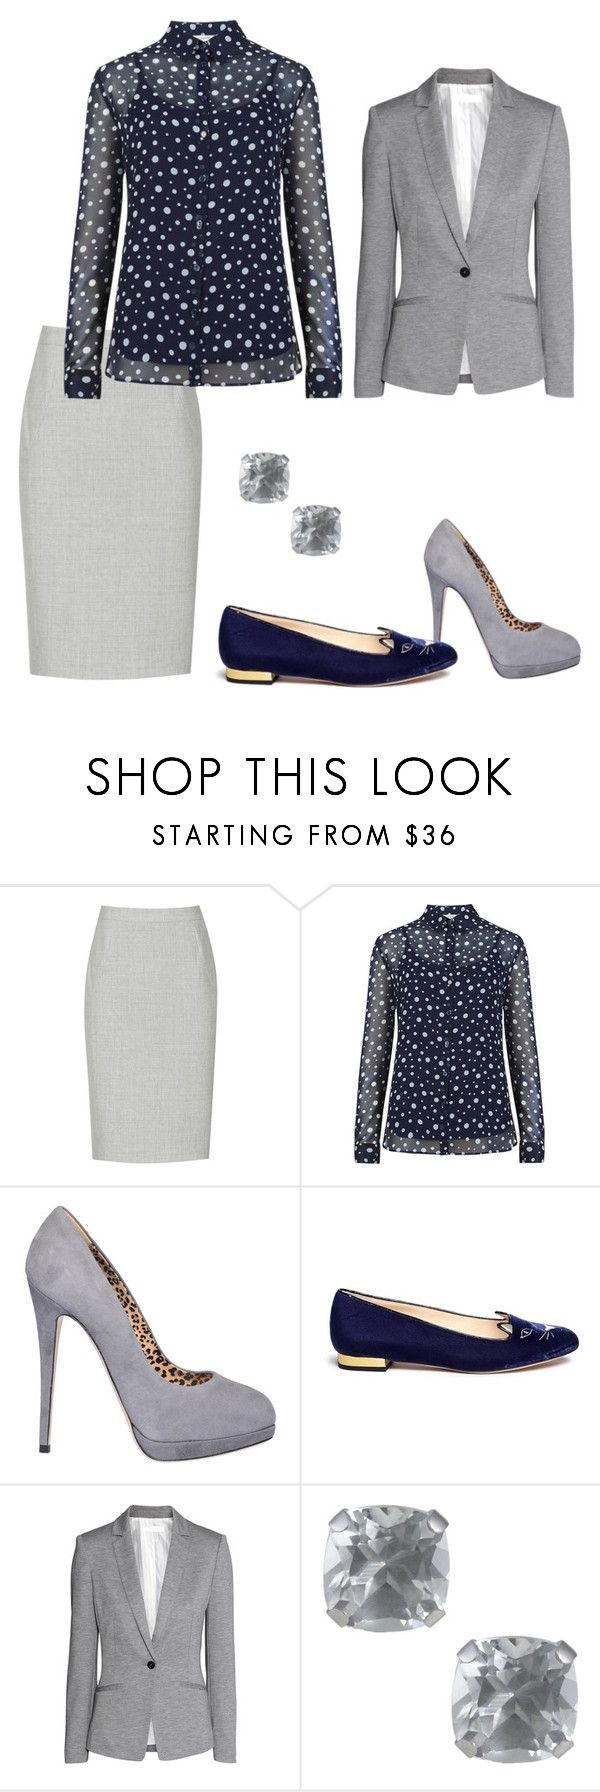 """bodkovane"" by anjelik2127 on Polyvore featuring Reiss, Lerre, Charlotte Olympia, H&M, Jewel Exclusive, women's clothing, women's fashion, women, female and woman"